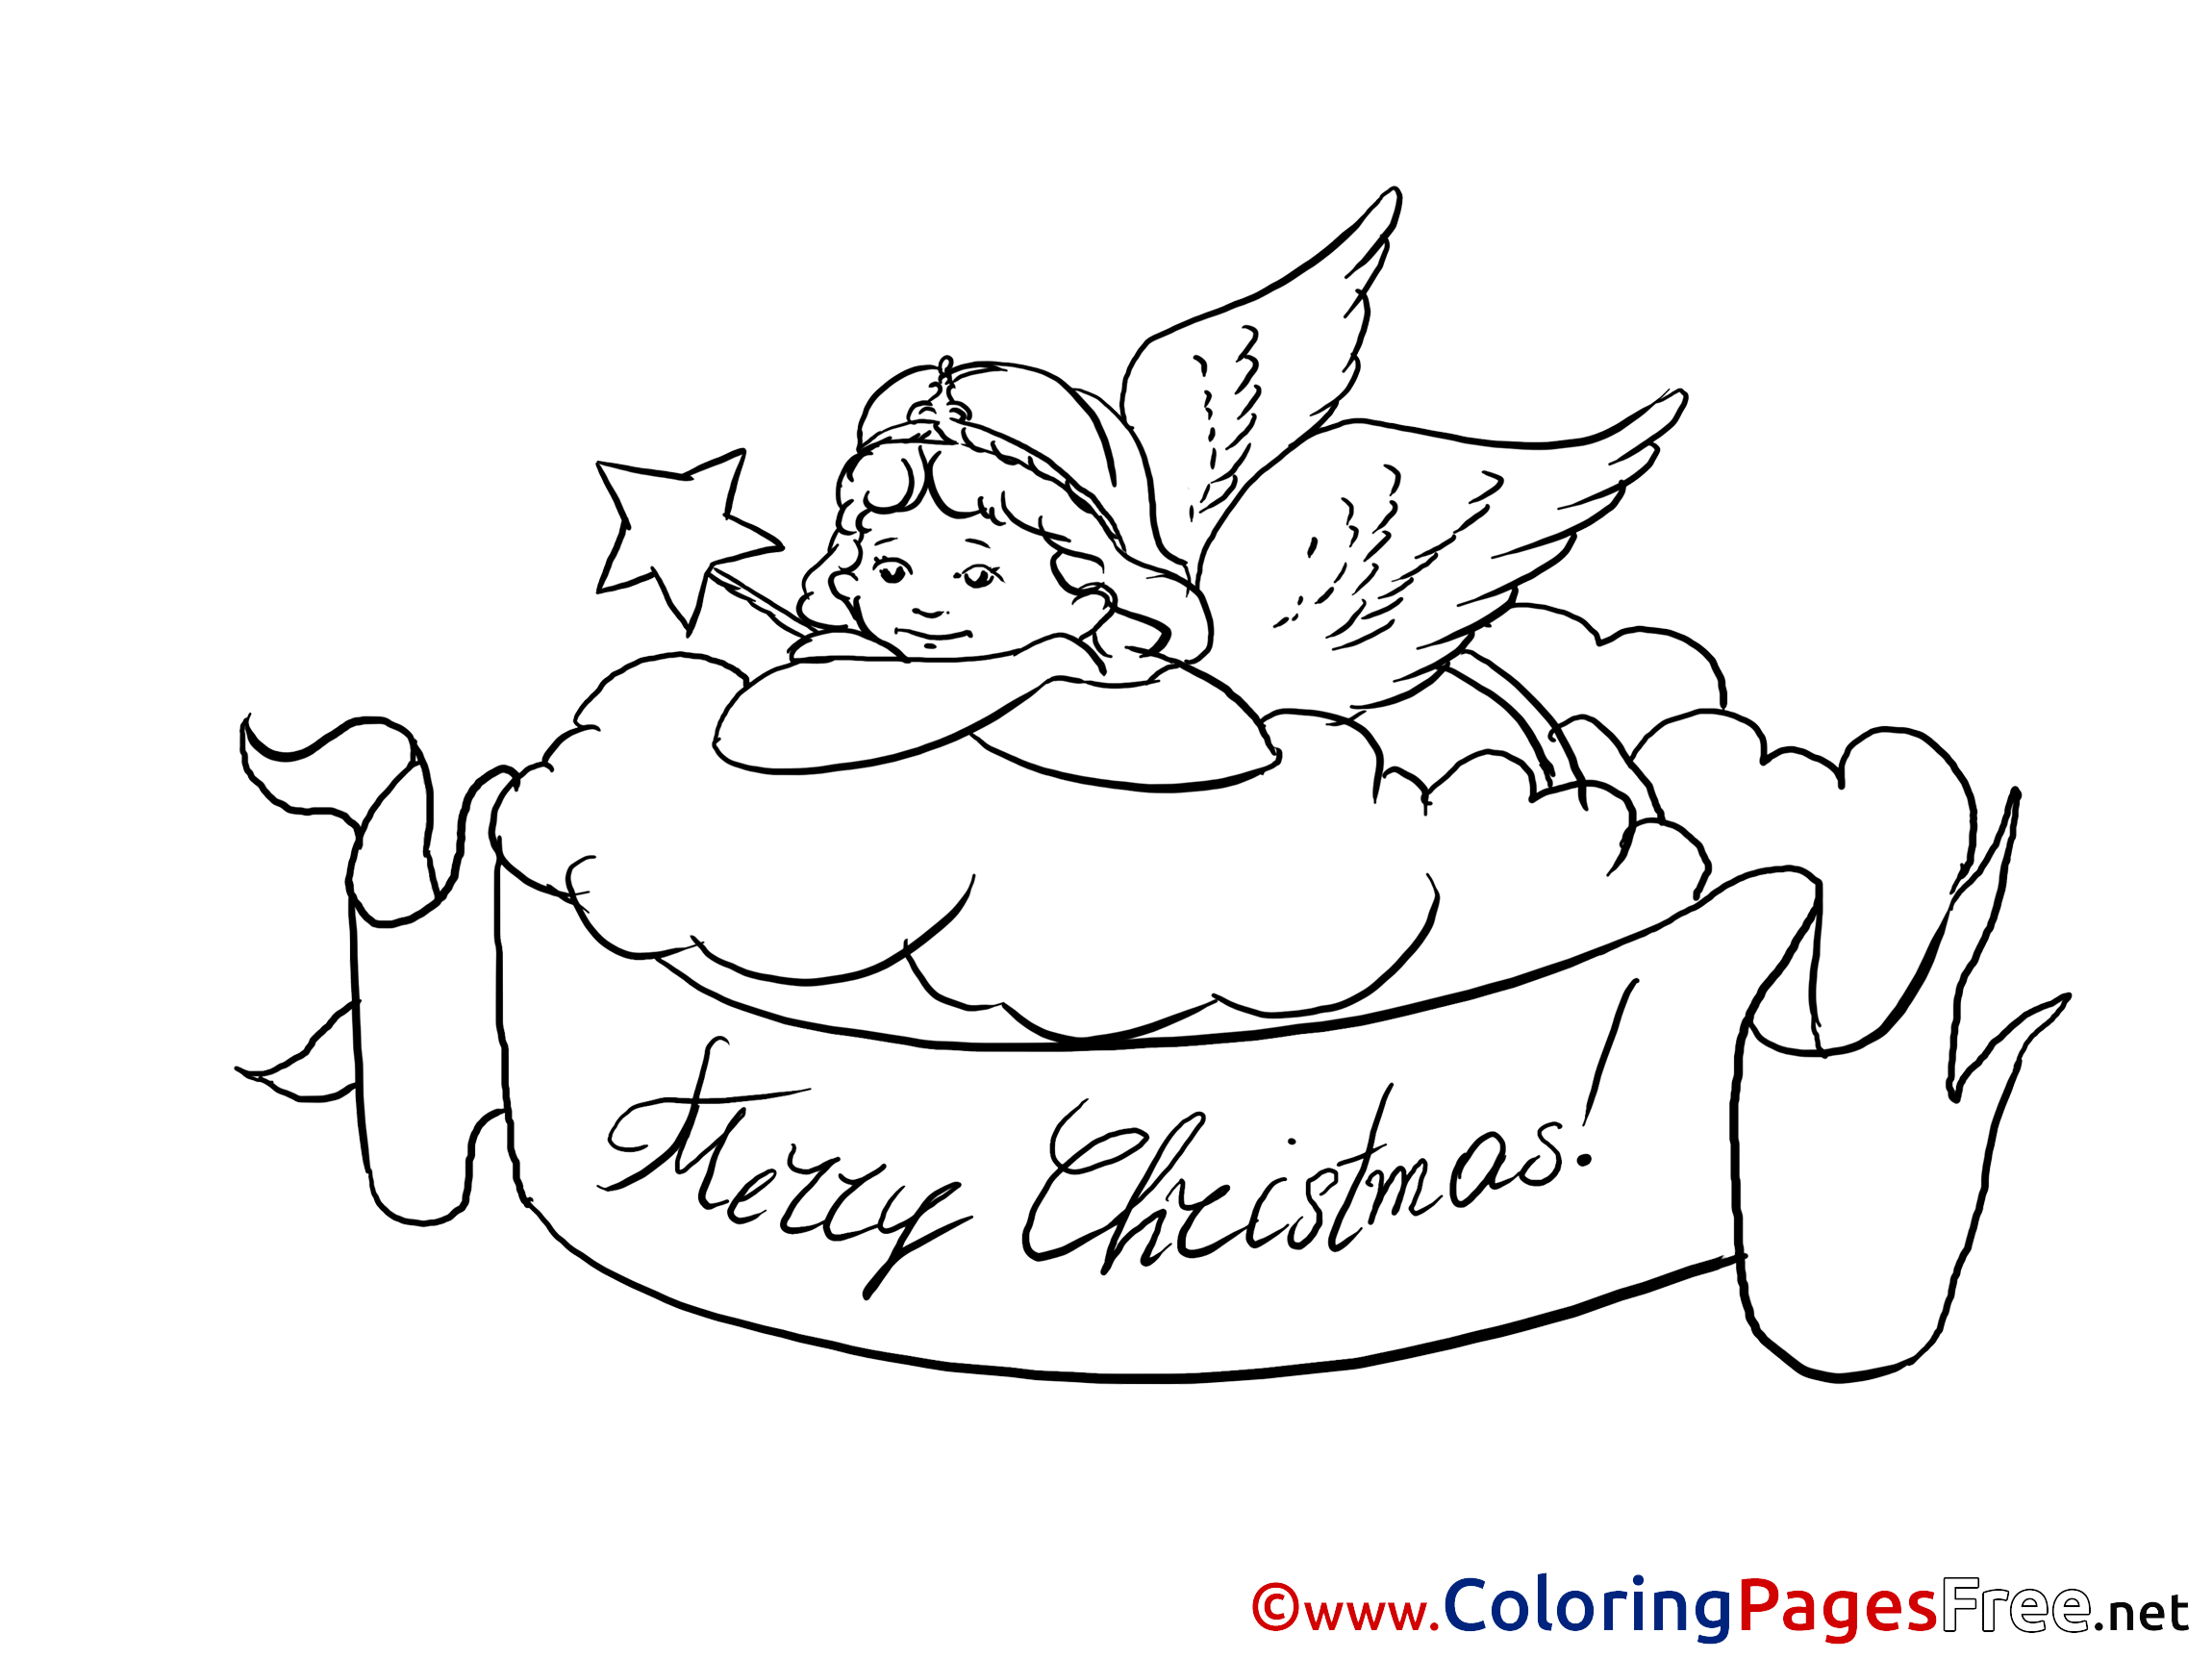 Coloring pages of merry christmas